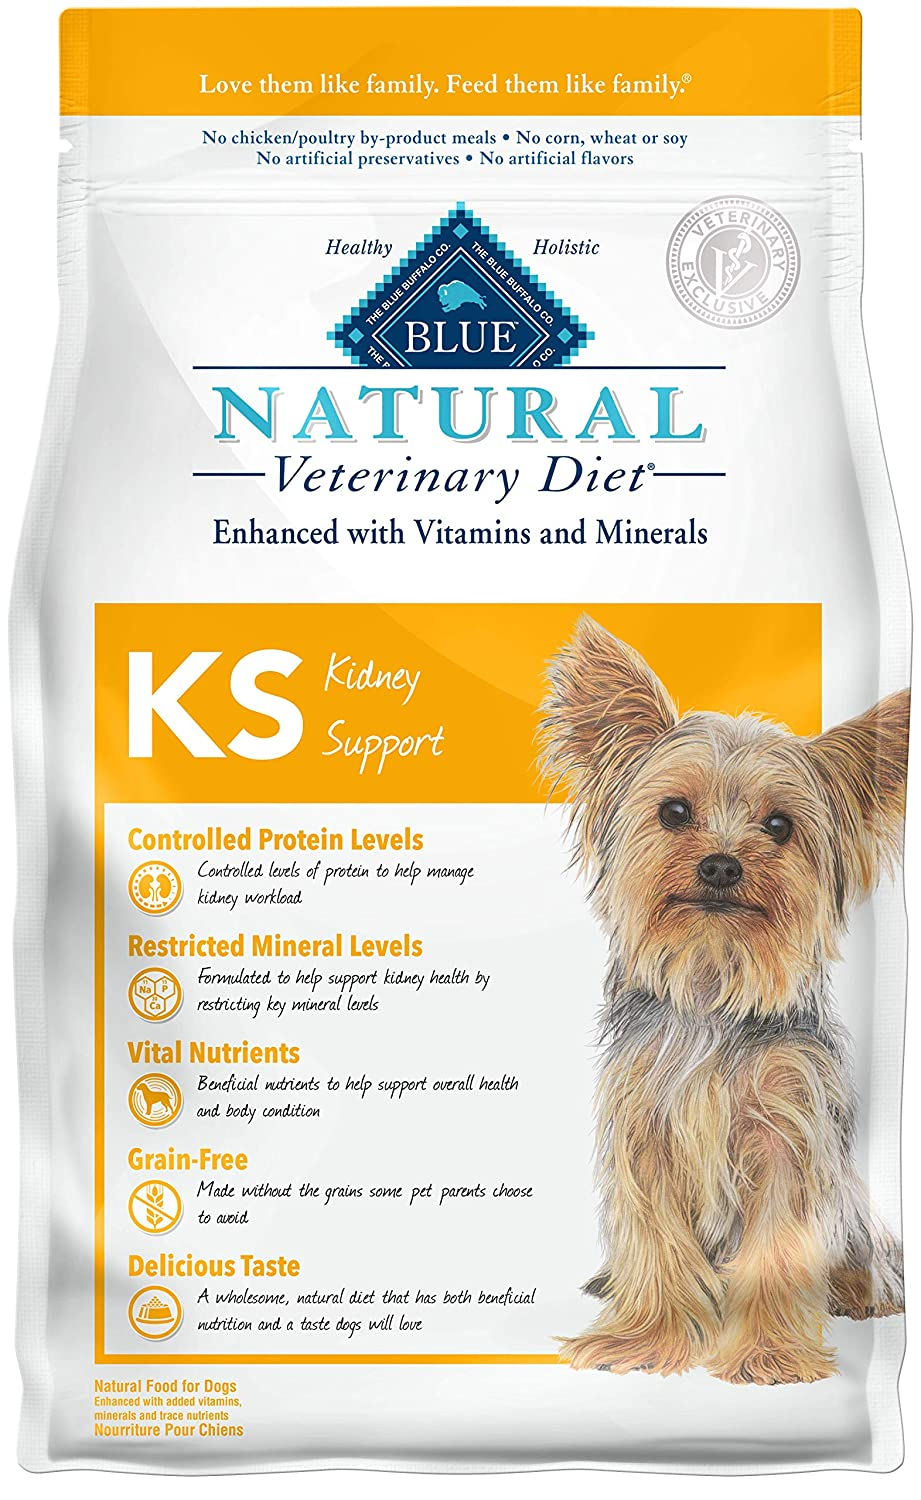 2. Blue Buffalo Natural Veterinary Diet KS Kidney Support Grain-Free Dry Dog Food